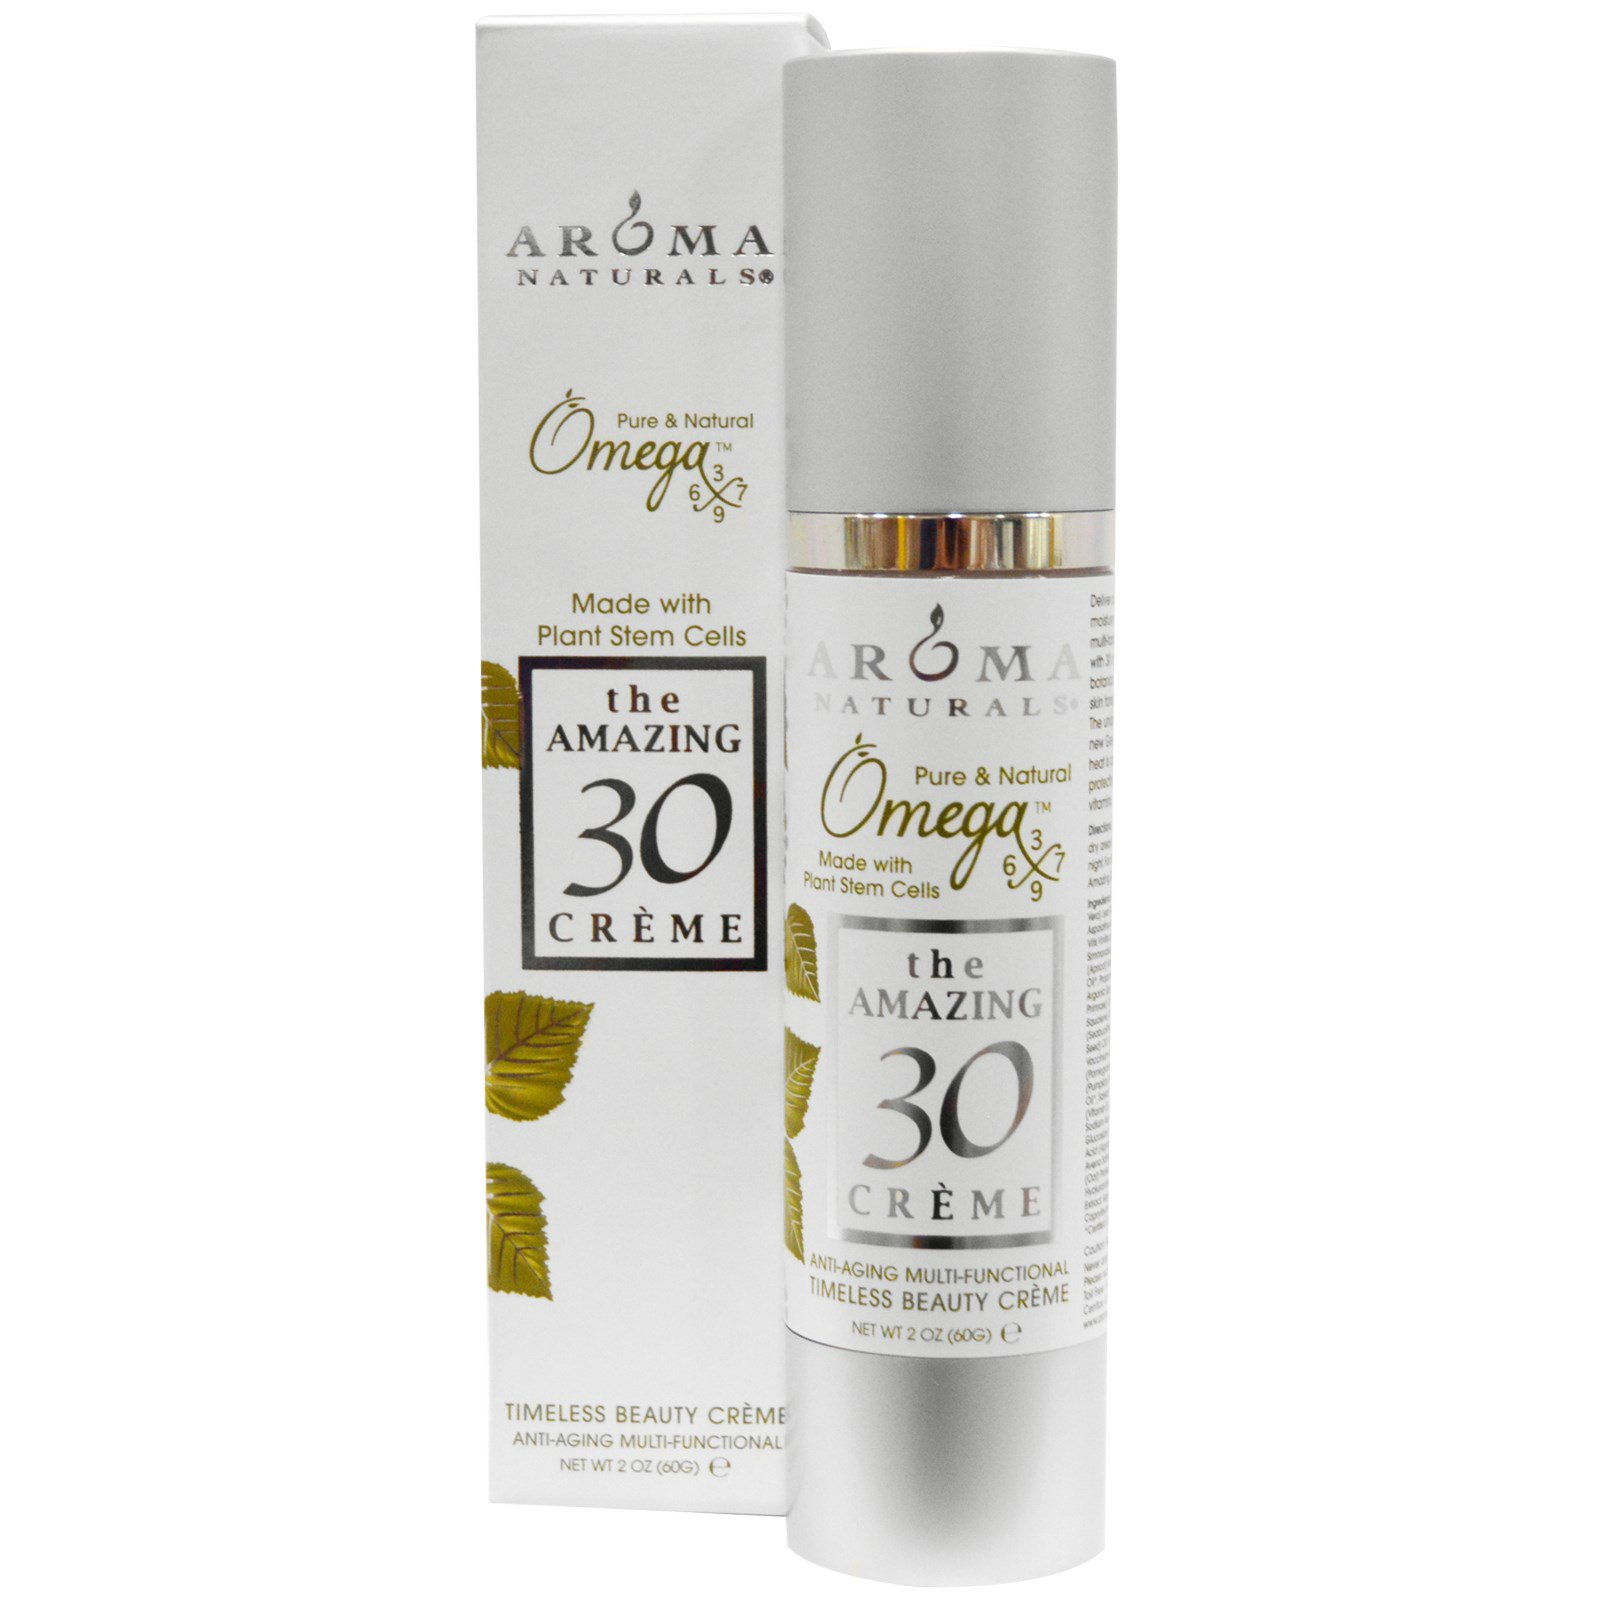 Aroma Naturals, the AMAZING 30, Creme, 2 oz